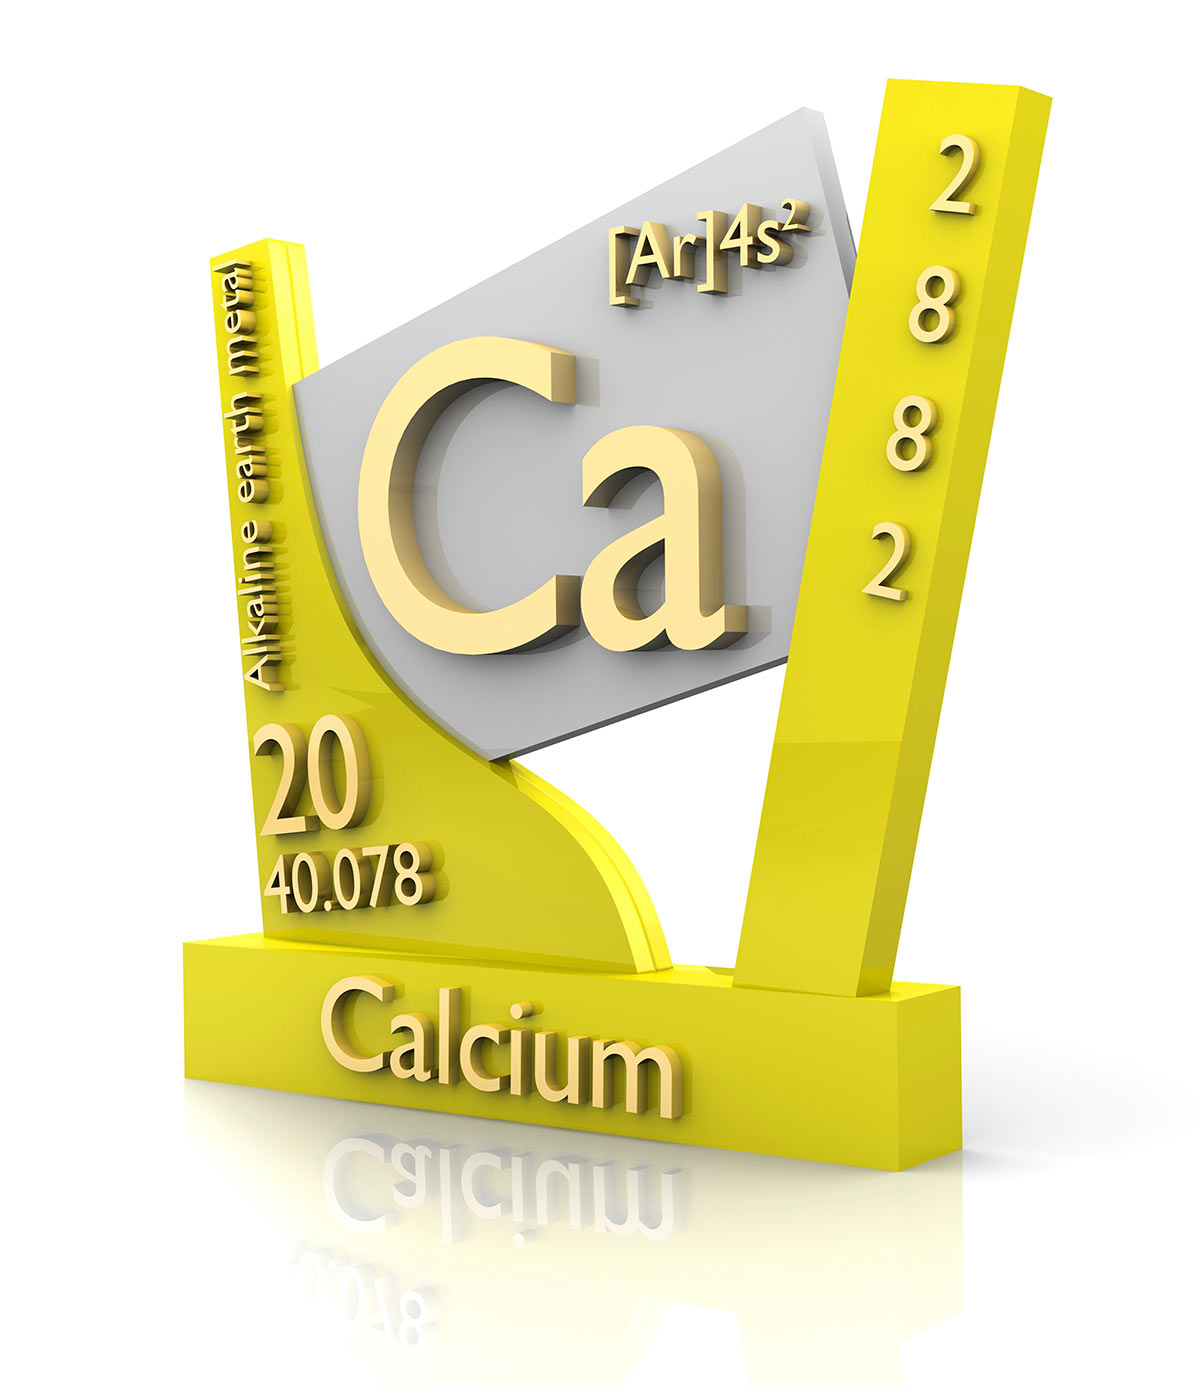 Dairy and calcium1